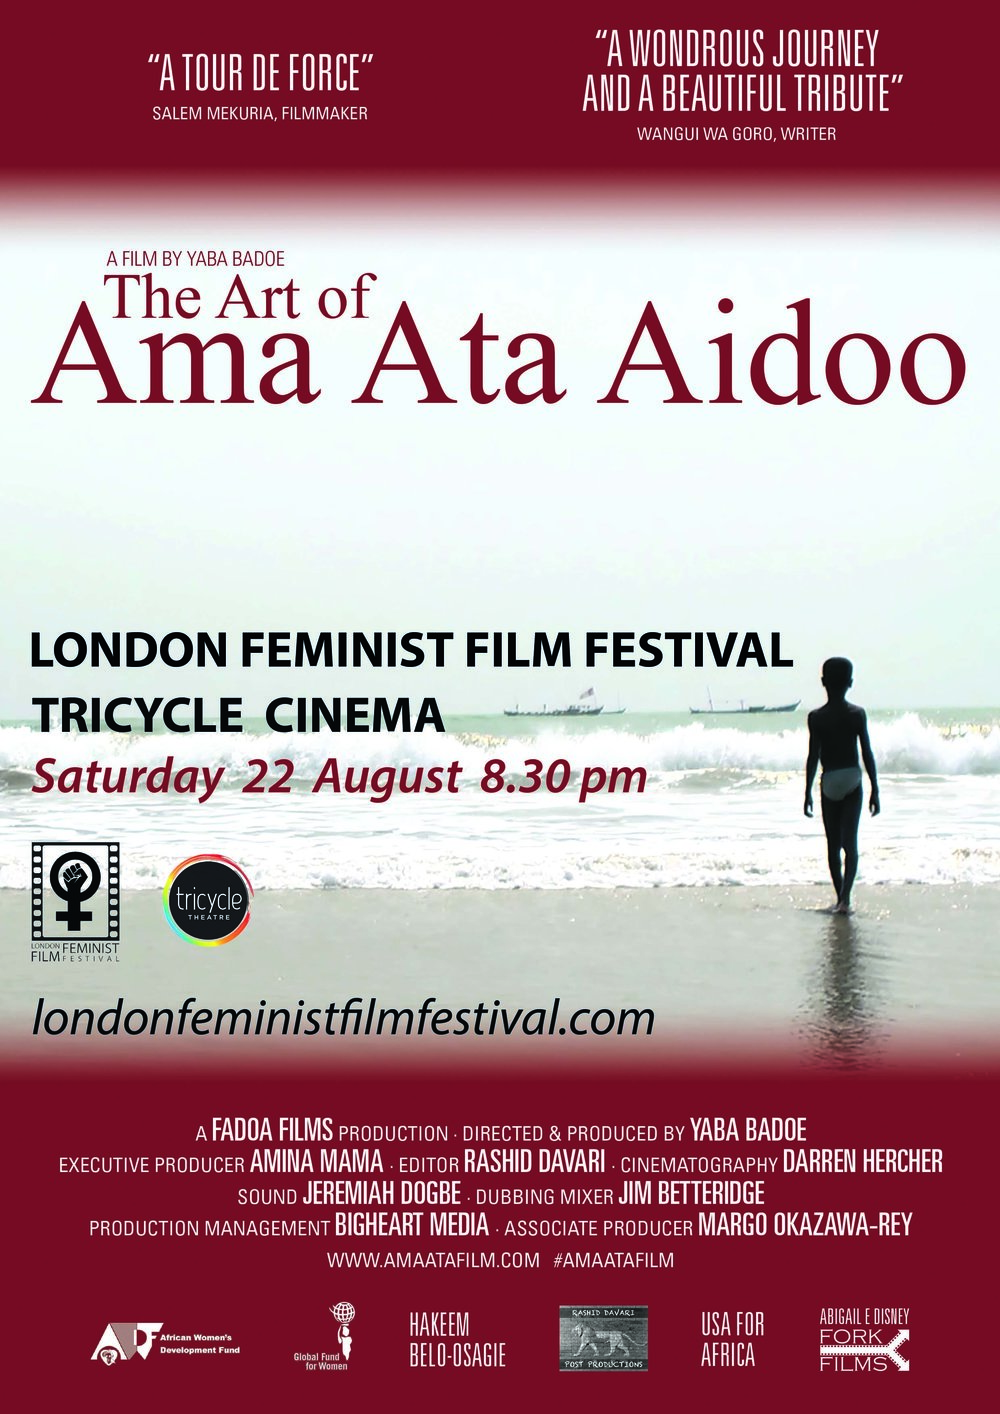 The Art of Ama Ata Aidoo, London Feminist Film Festival, Tricycle Theatre, 2015 - Screening and panel discussion chaired by Dzifa of Yaba Badoe's film charting the life and creative journey of one of Africa's foremost dramatists and storytellers.